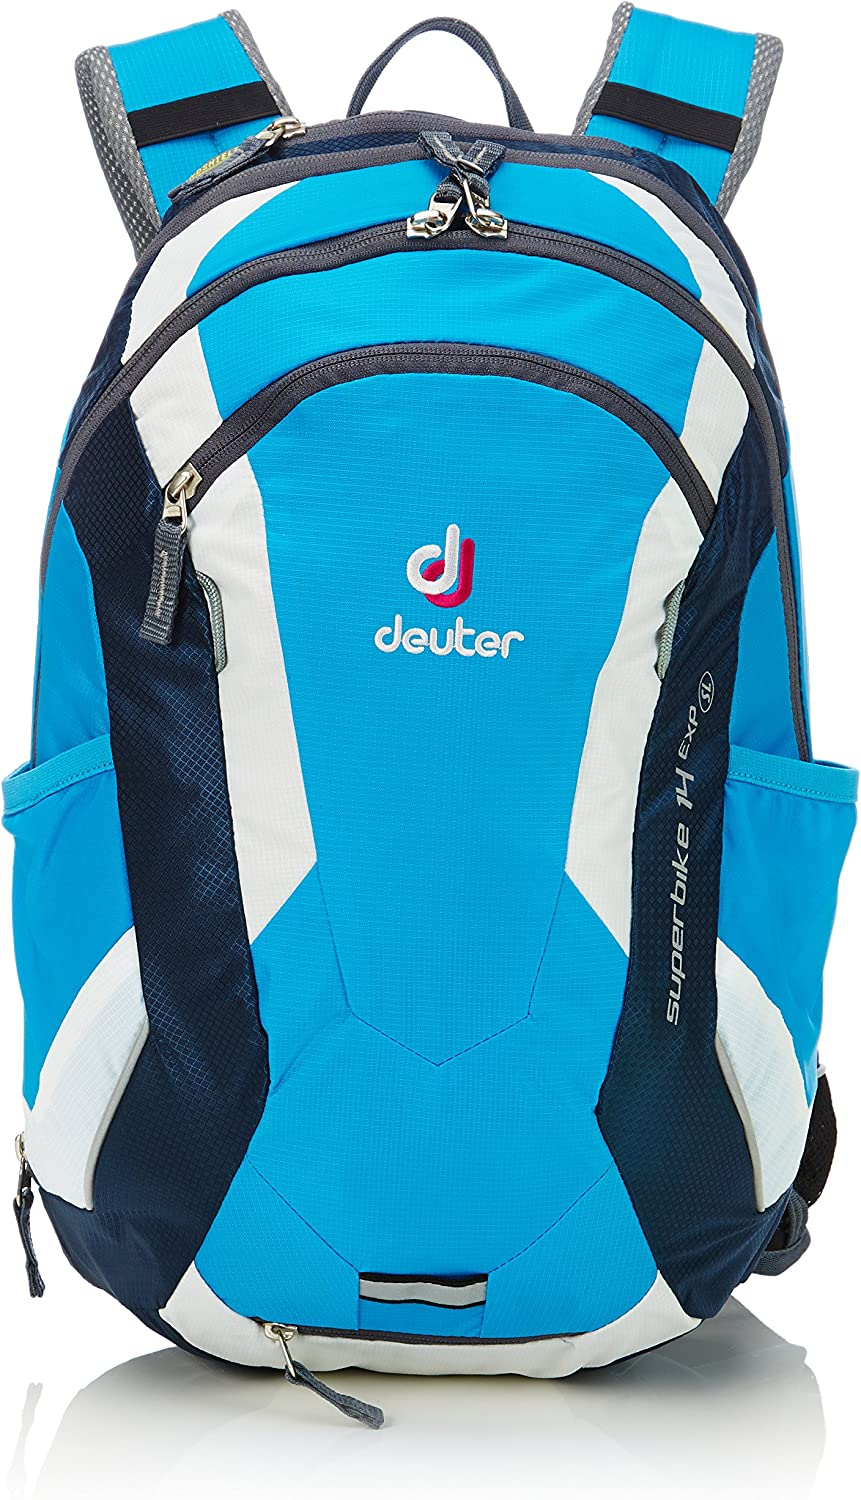 (One Size, Turquoise Midnight)  Deuter Women's Superbike 14 Backpack